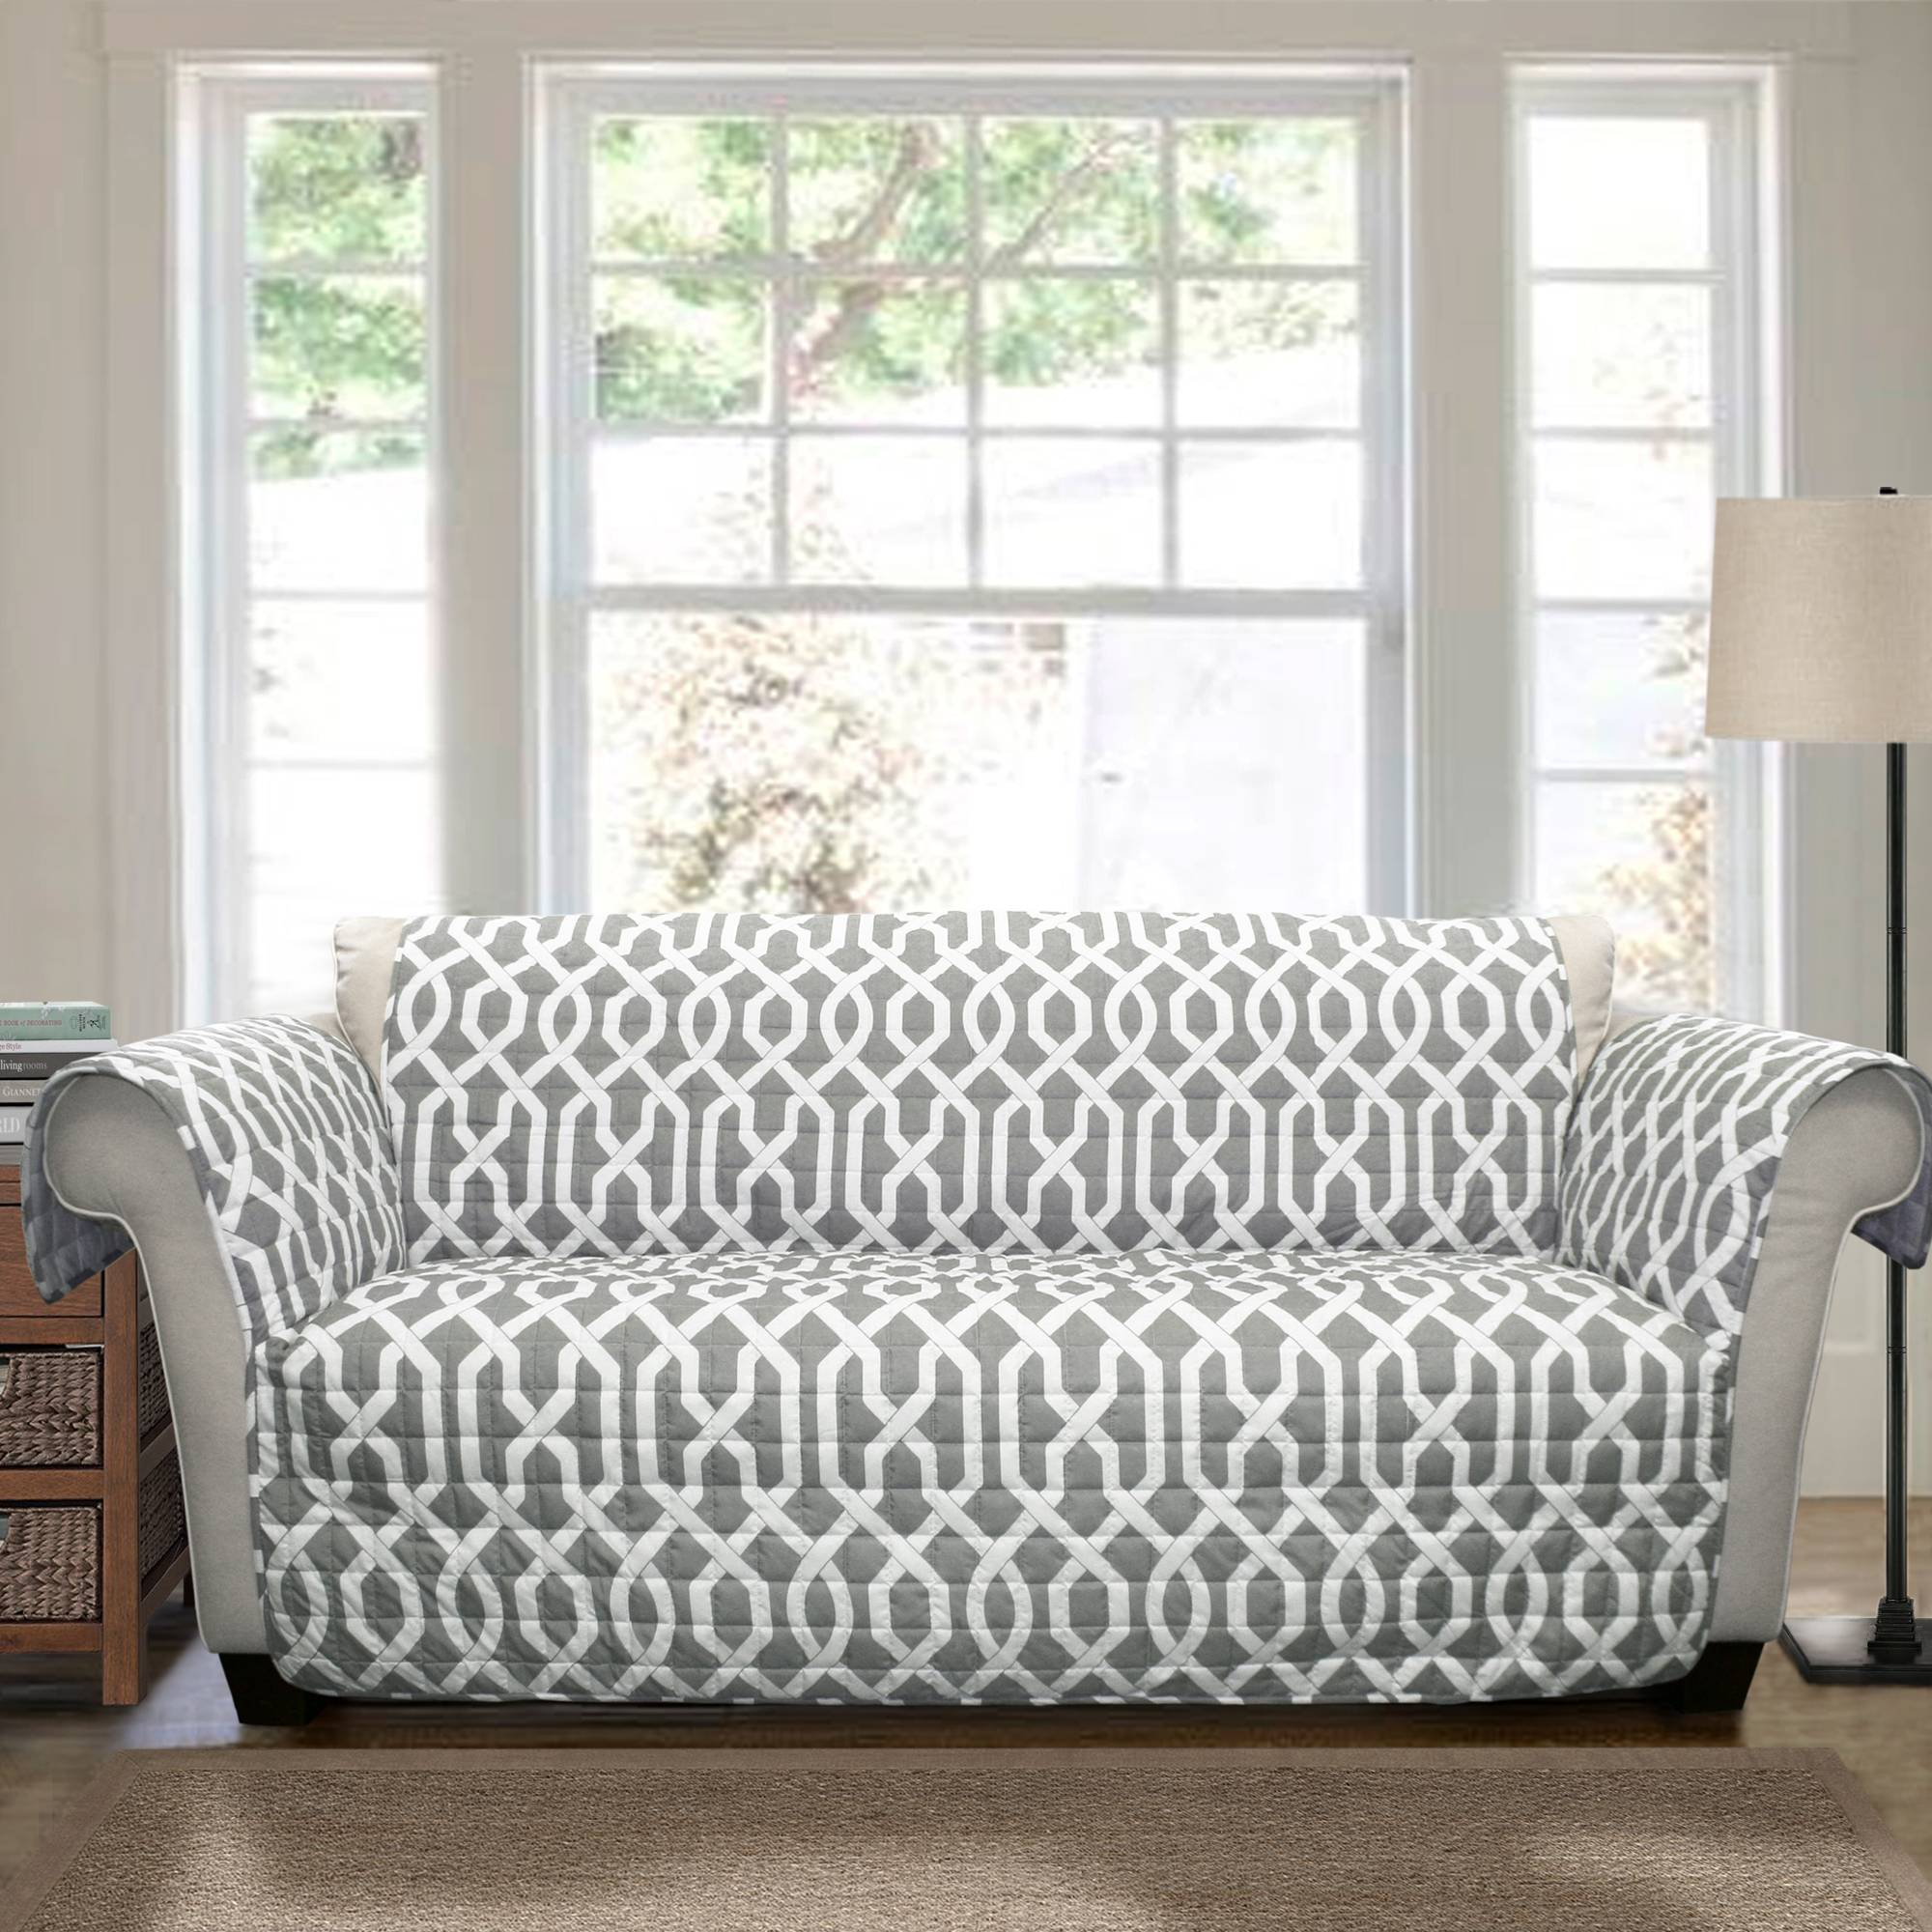 Beau Edward Furniture Protector, Trellis Arm Chair   Walmart.com